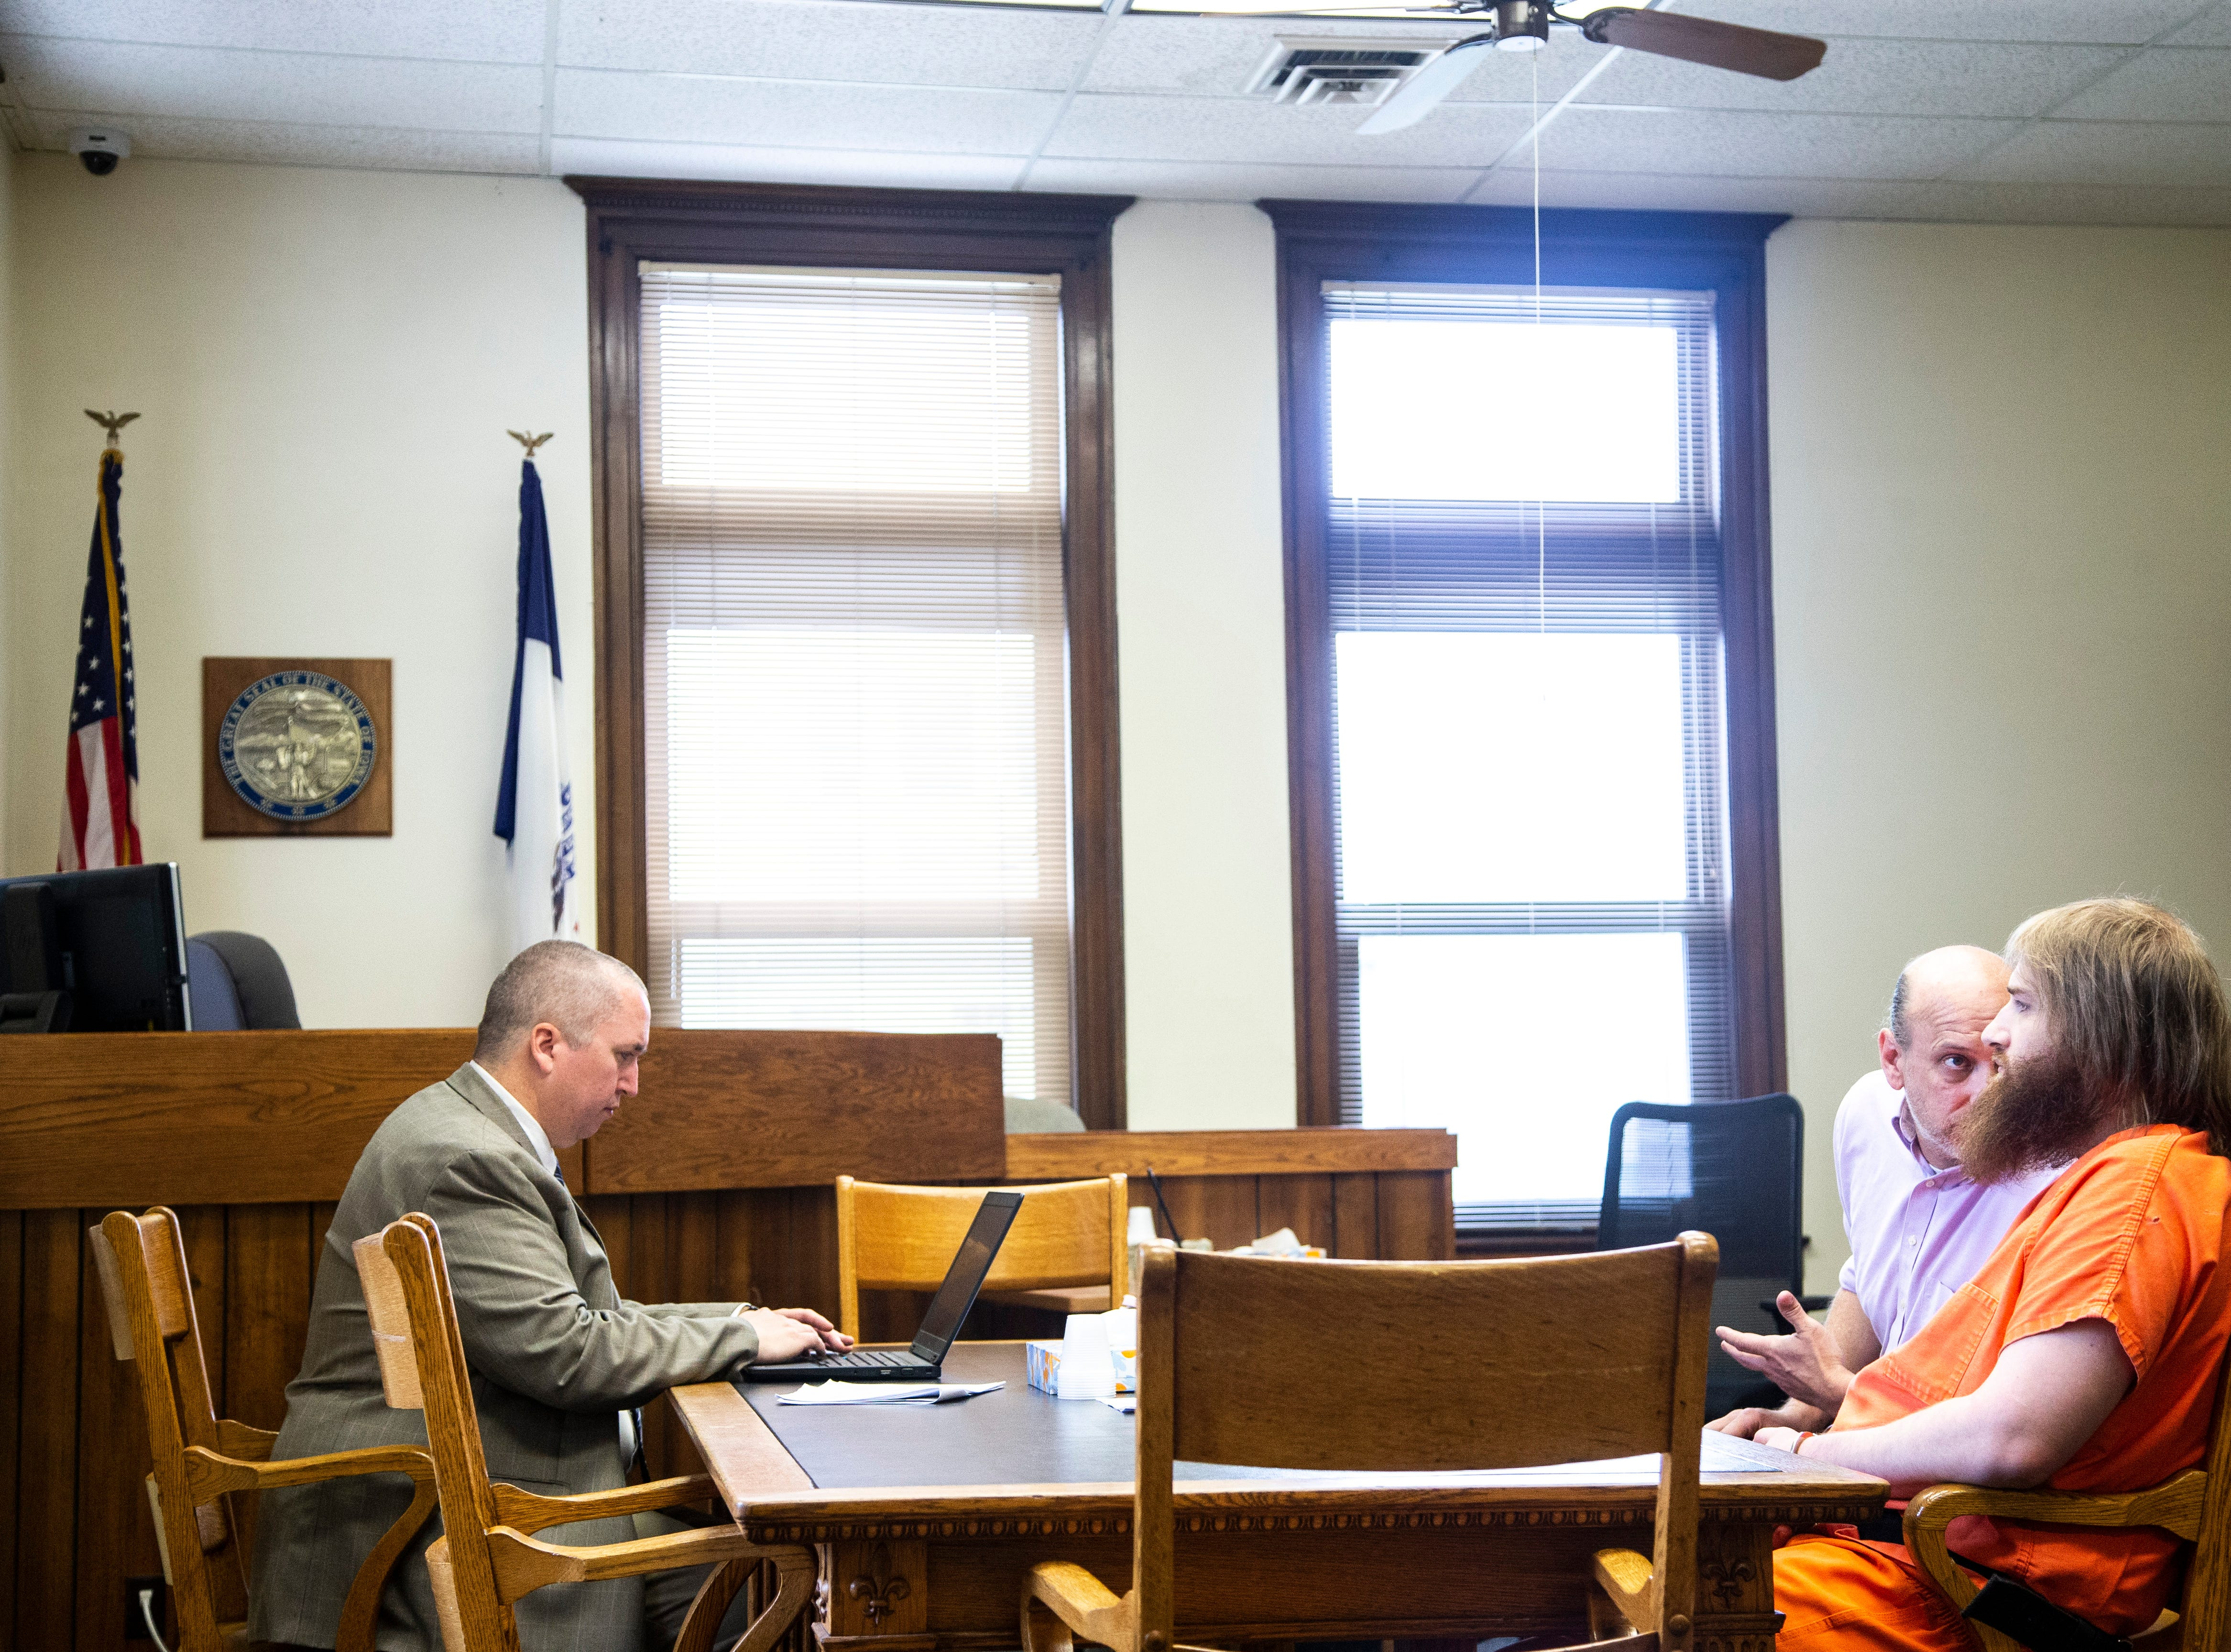 Defense attorney John Bruzek, second from right, talks with Flannery Kennedy-Meier during a sentencing hearing for attempted murder, Tuesday, May 14, 2019, at the Johnson County Courthouse in Iowa City, Iowa.